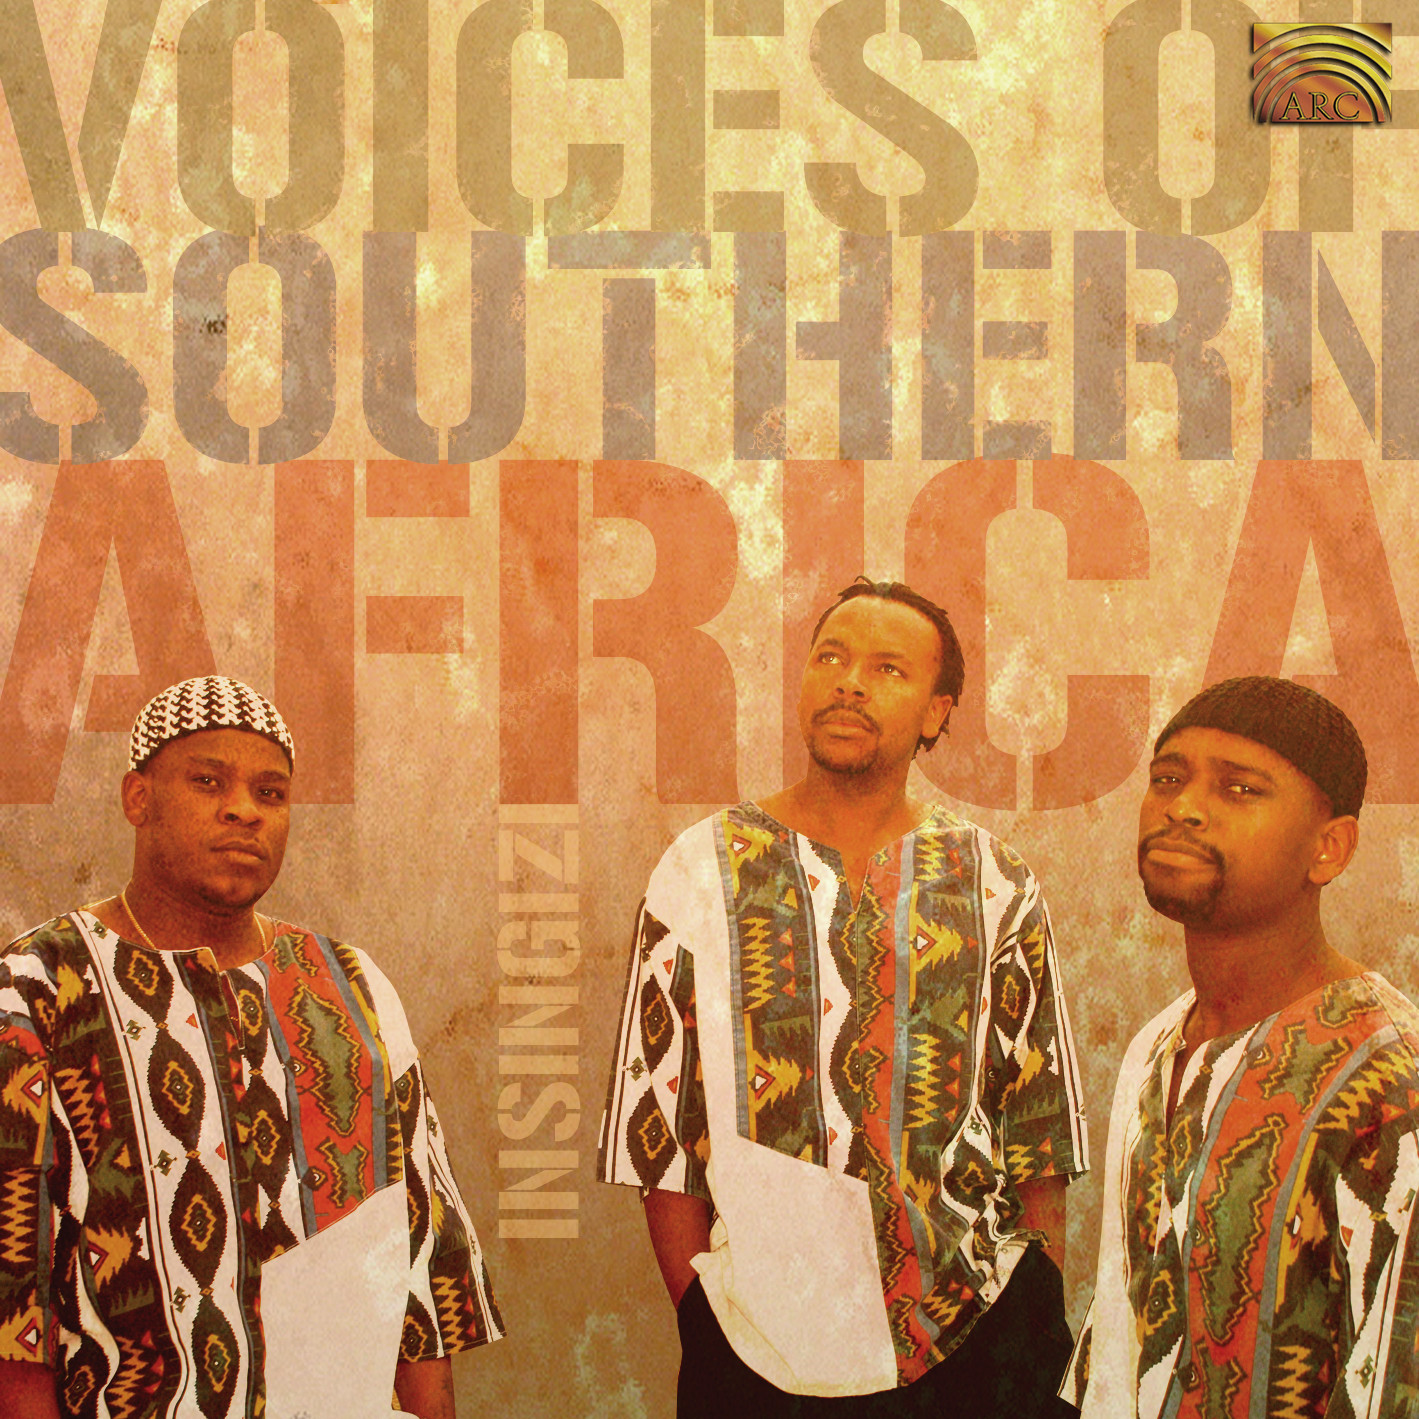 EUCD1855 Voices of Southern Africa